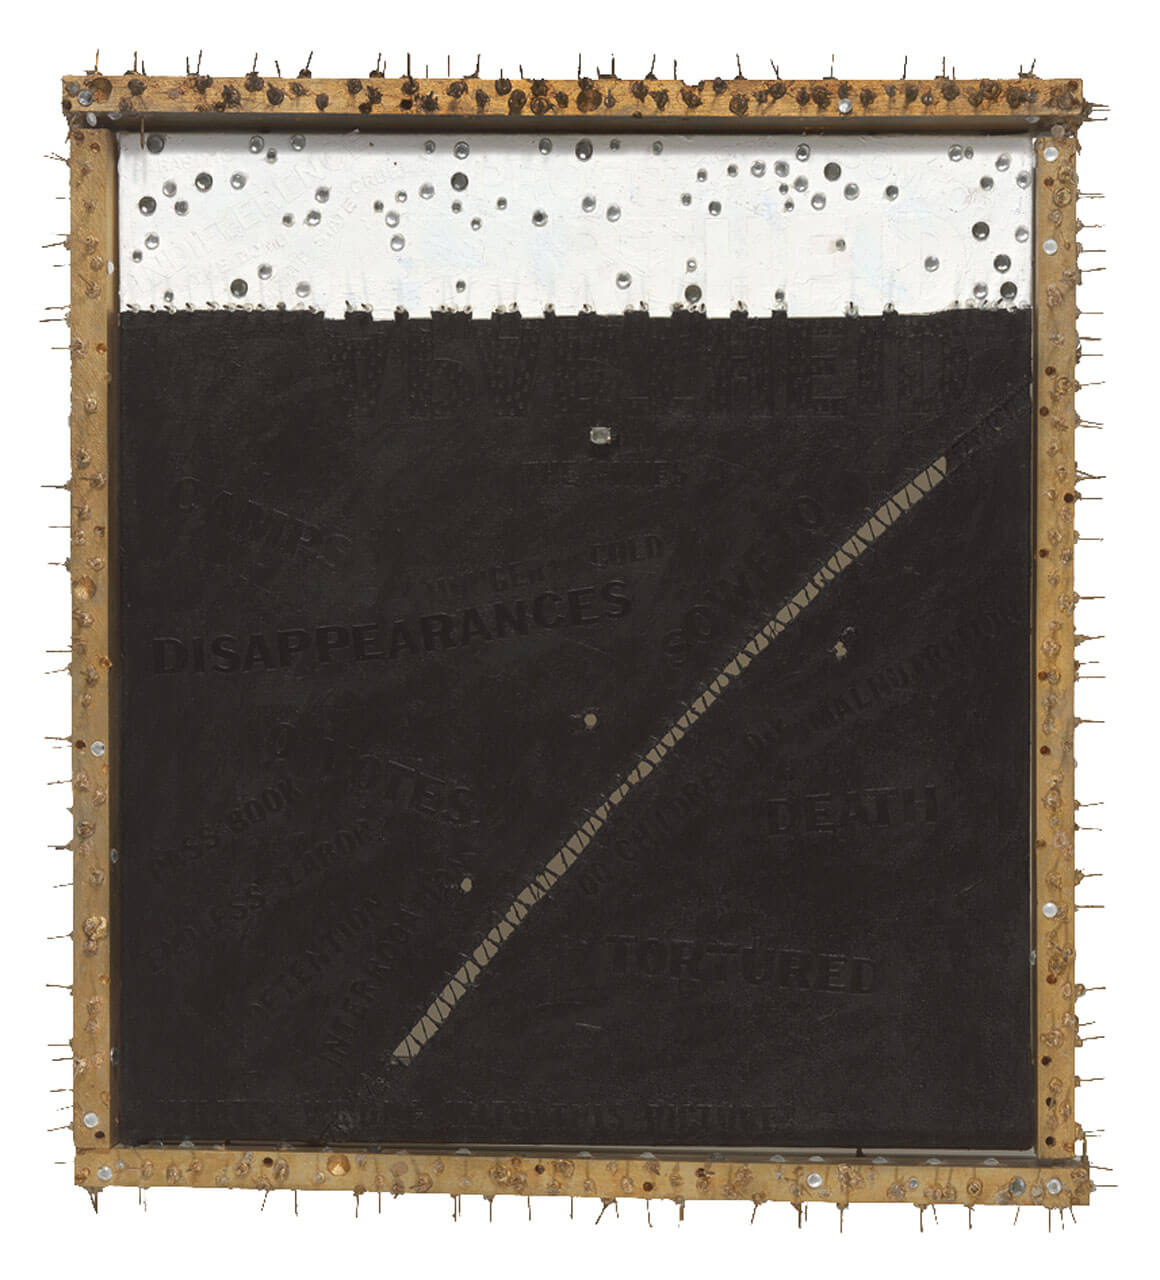 A mixed media artwork depicting apartheid in South Africa. The canvas is split into a black area and a white area, with each section containing various words in vinyl tape. There is a wooden frame around the plaster with nails protruding out from it.